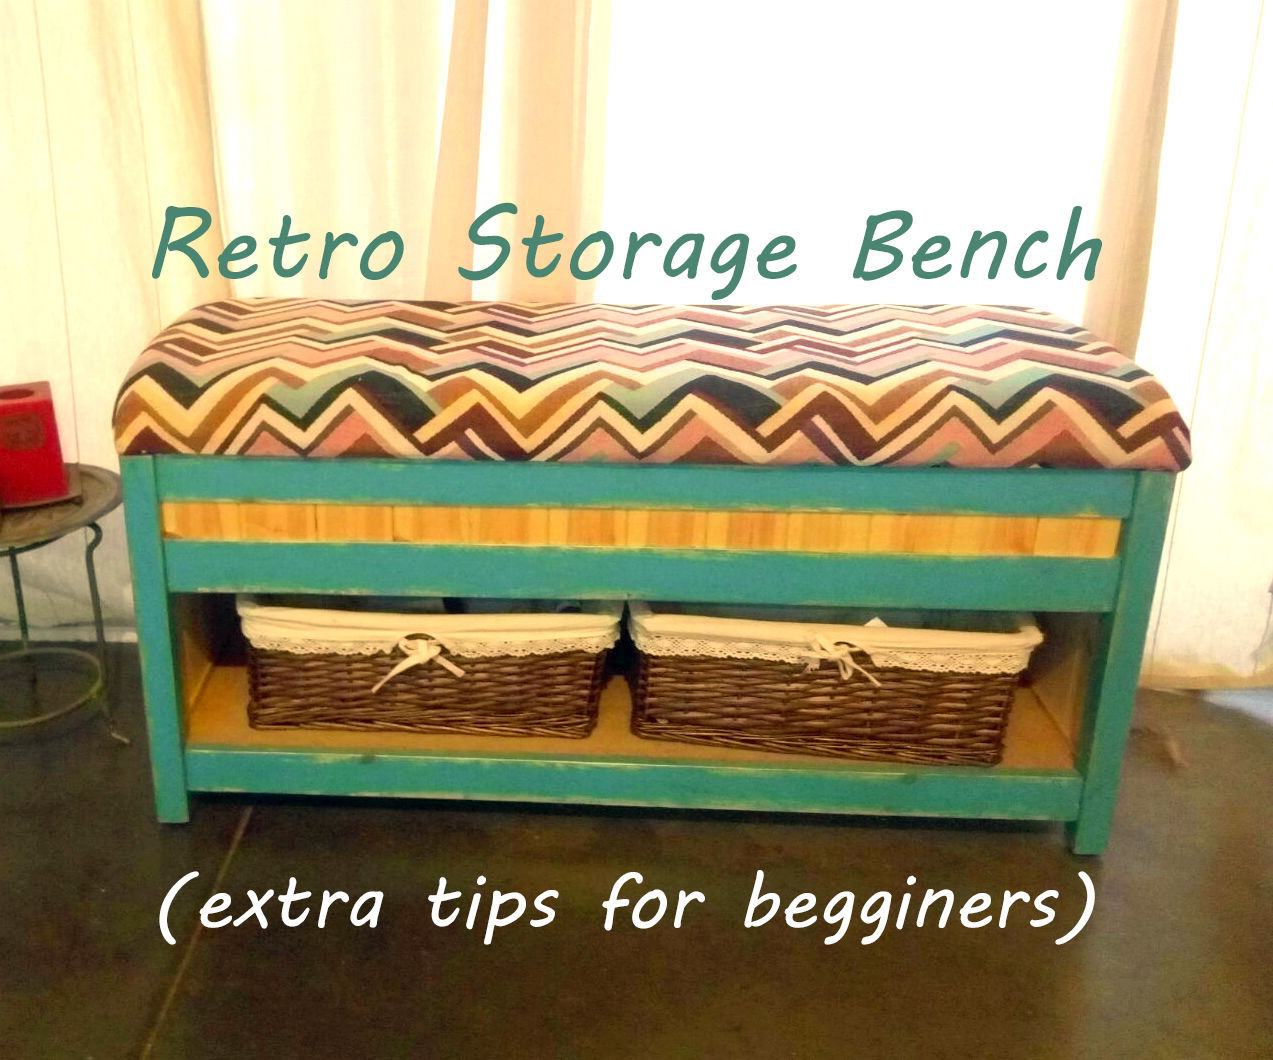 Retro Storage Bench (extra Tips for First Timers)